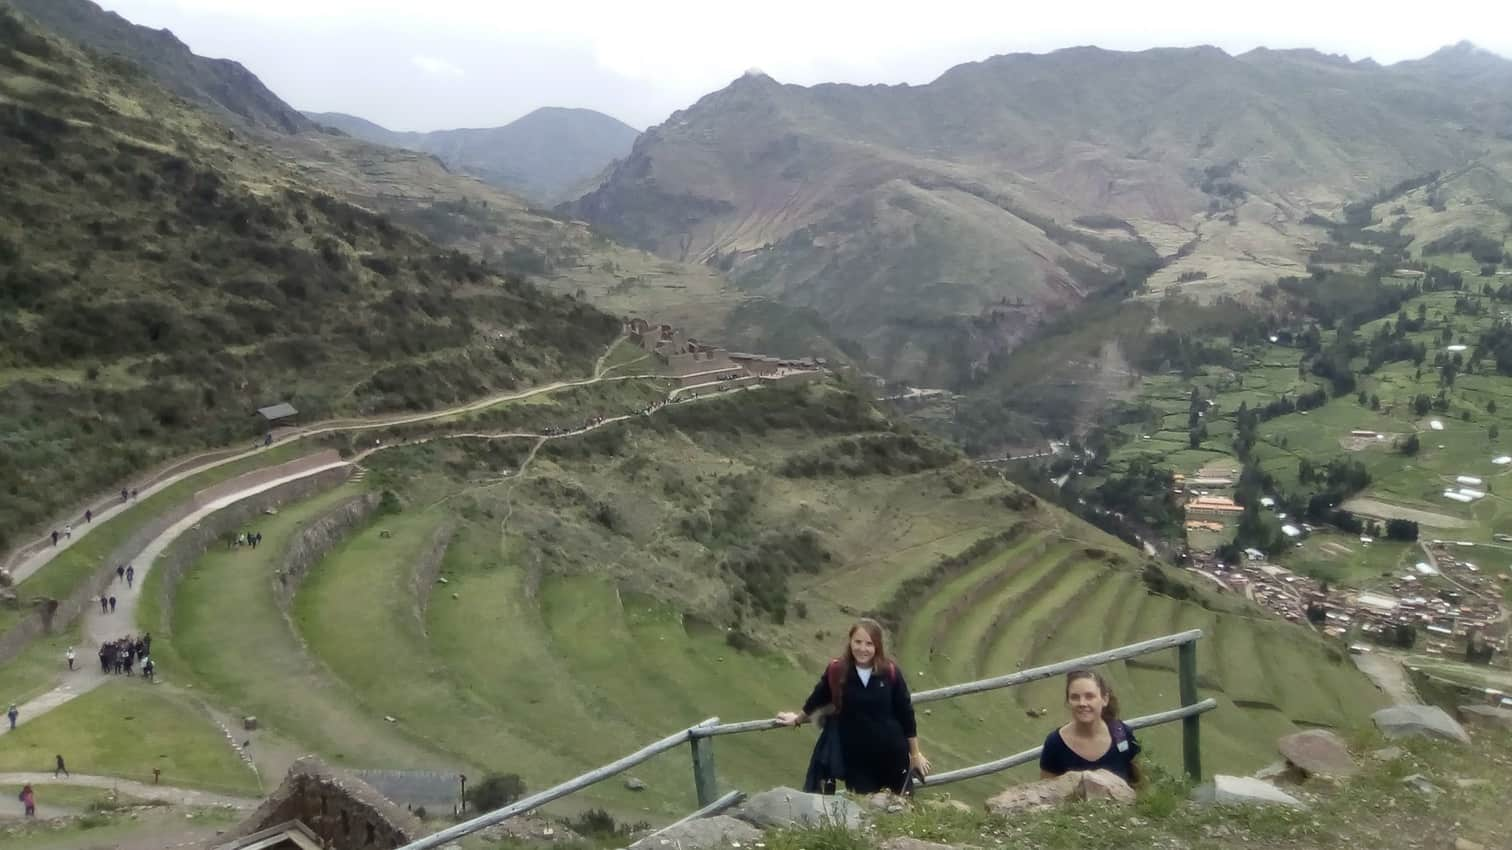 Walking down with my sister in law wasn't that hard as walking up in Pisac, Peru.